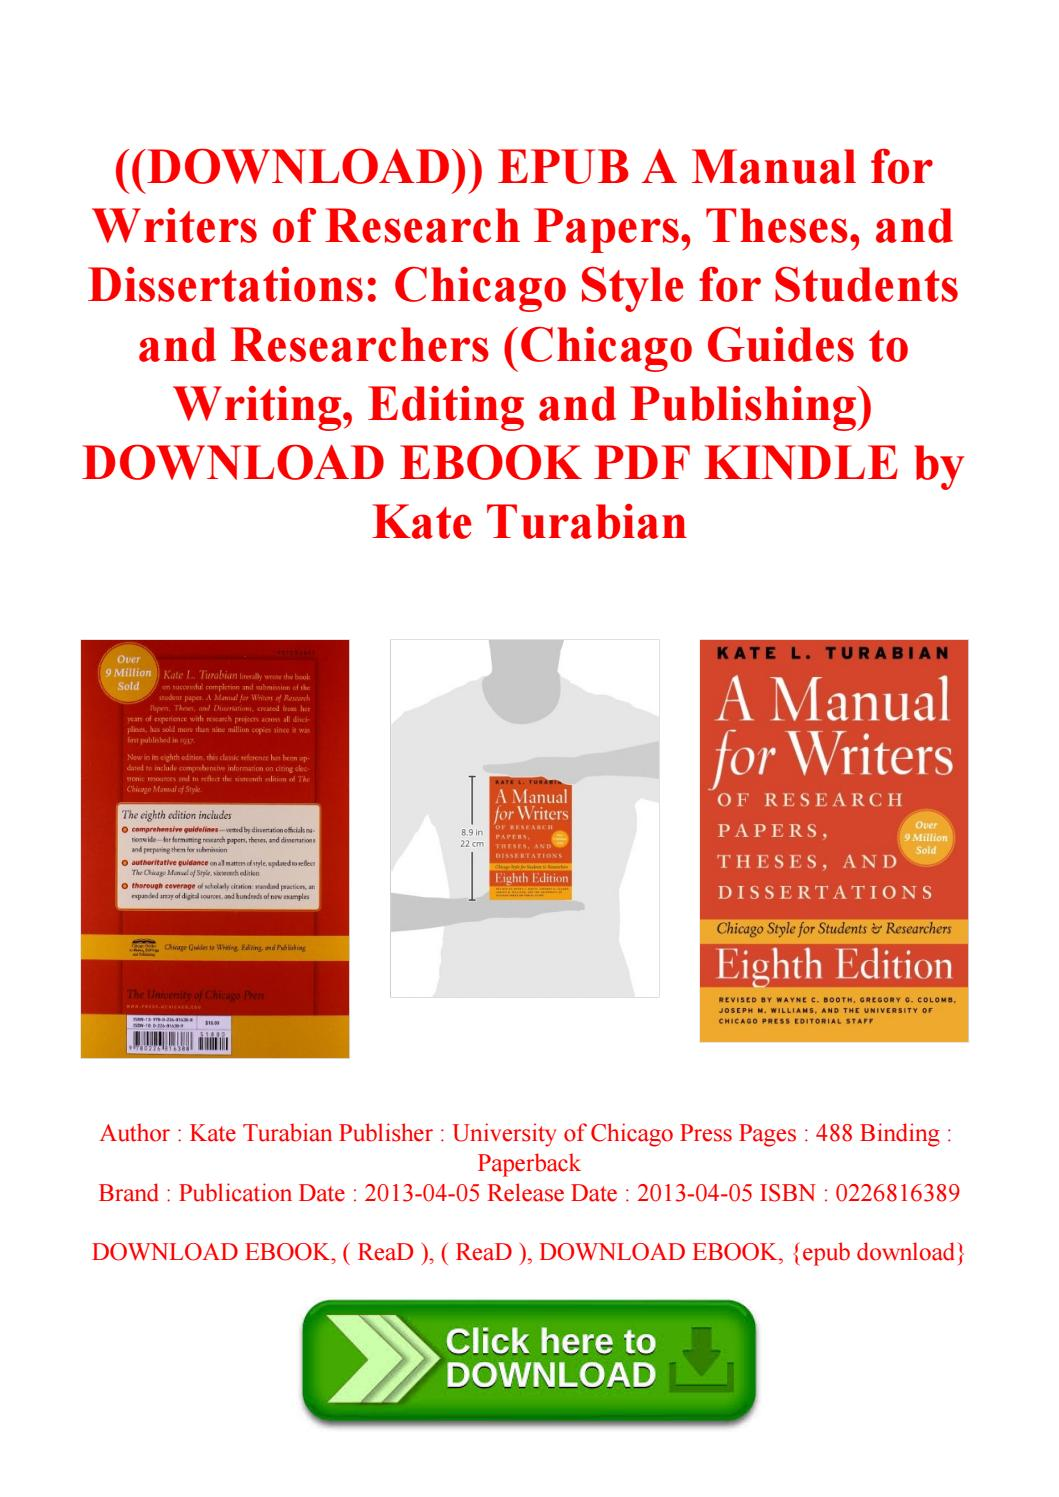 018 Manual For Writers Of Research Papers Theses And Dissertations Eighth Edition Paper Page 1 Phenomenal A Pdf Full